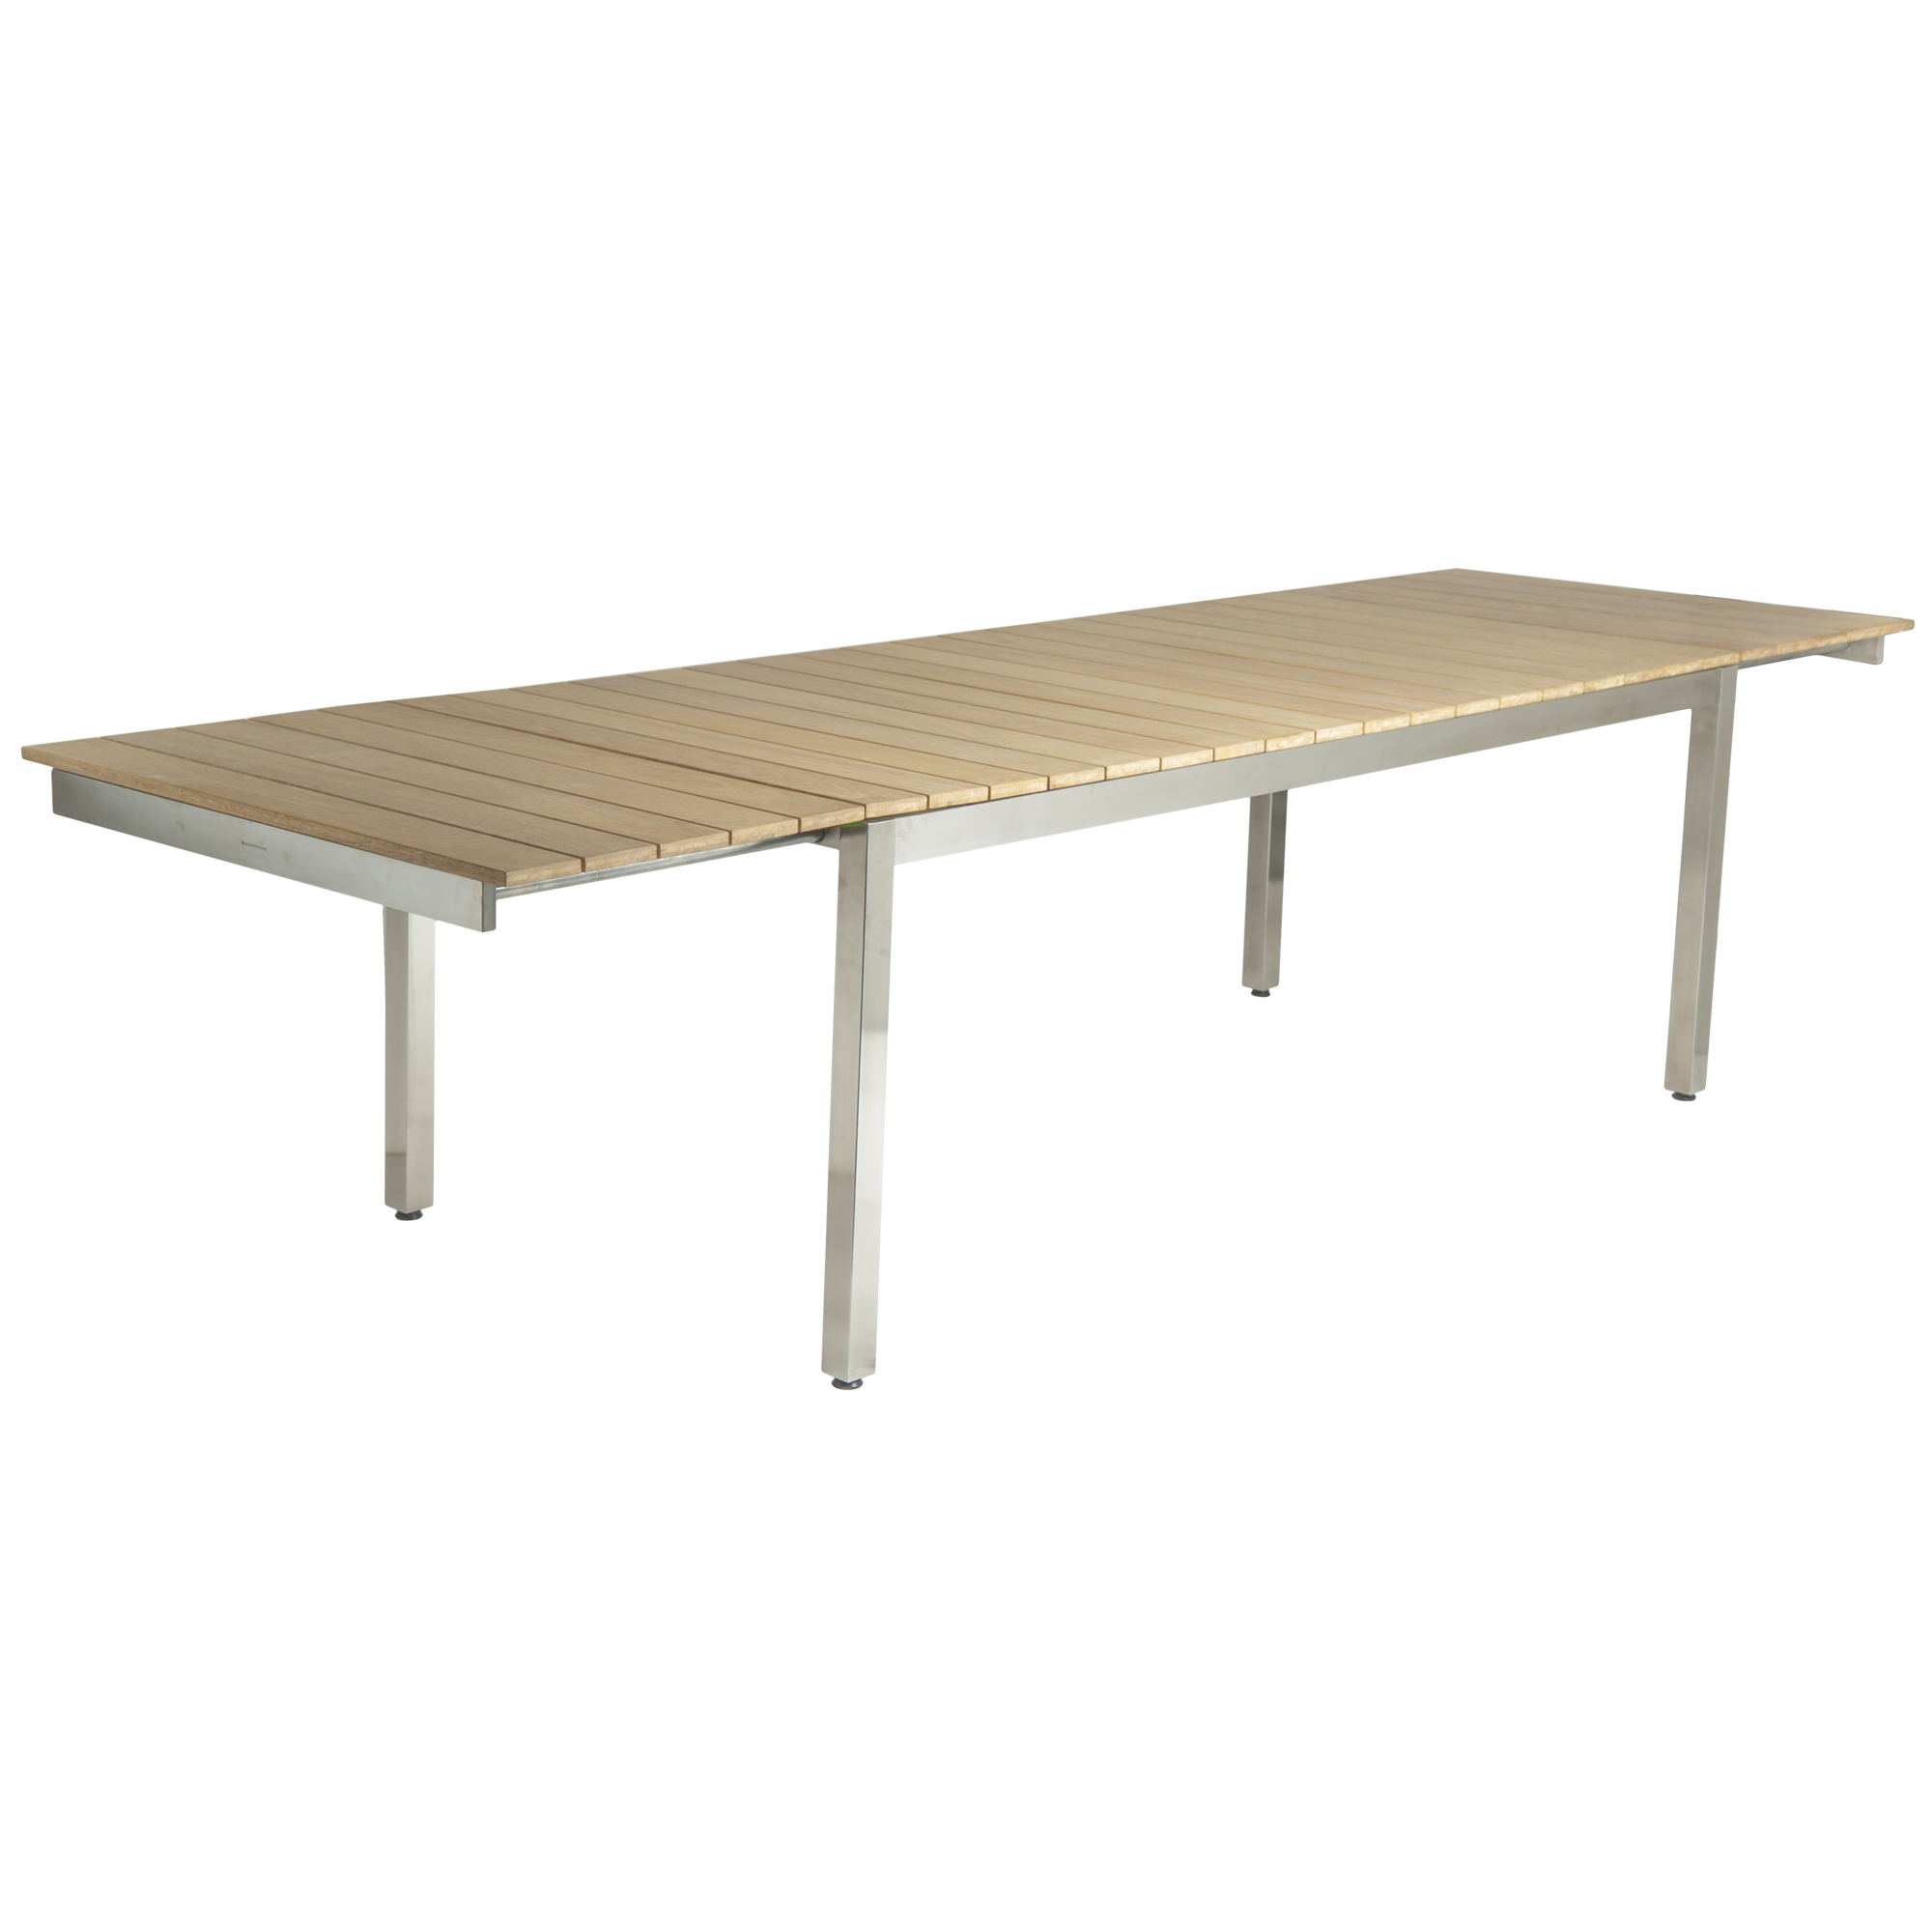 with Roble Hardwood Top